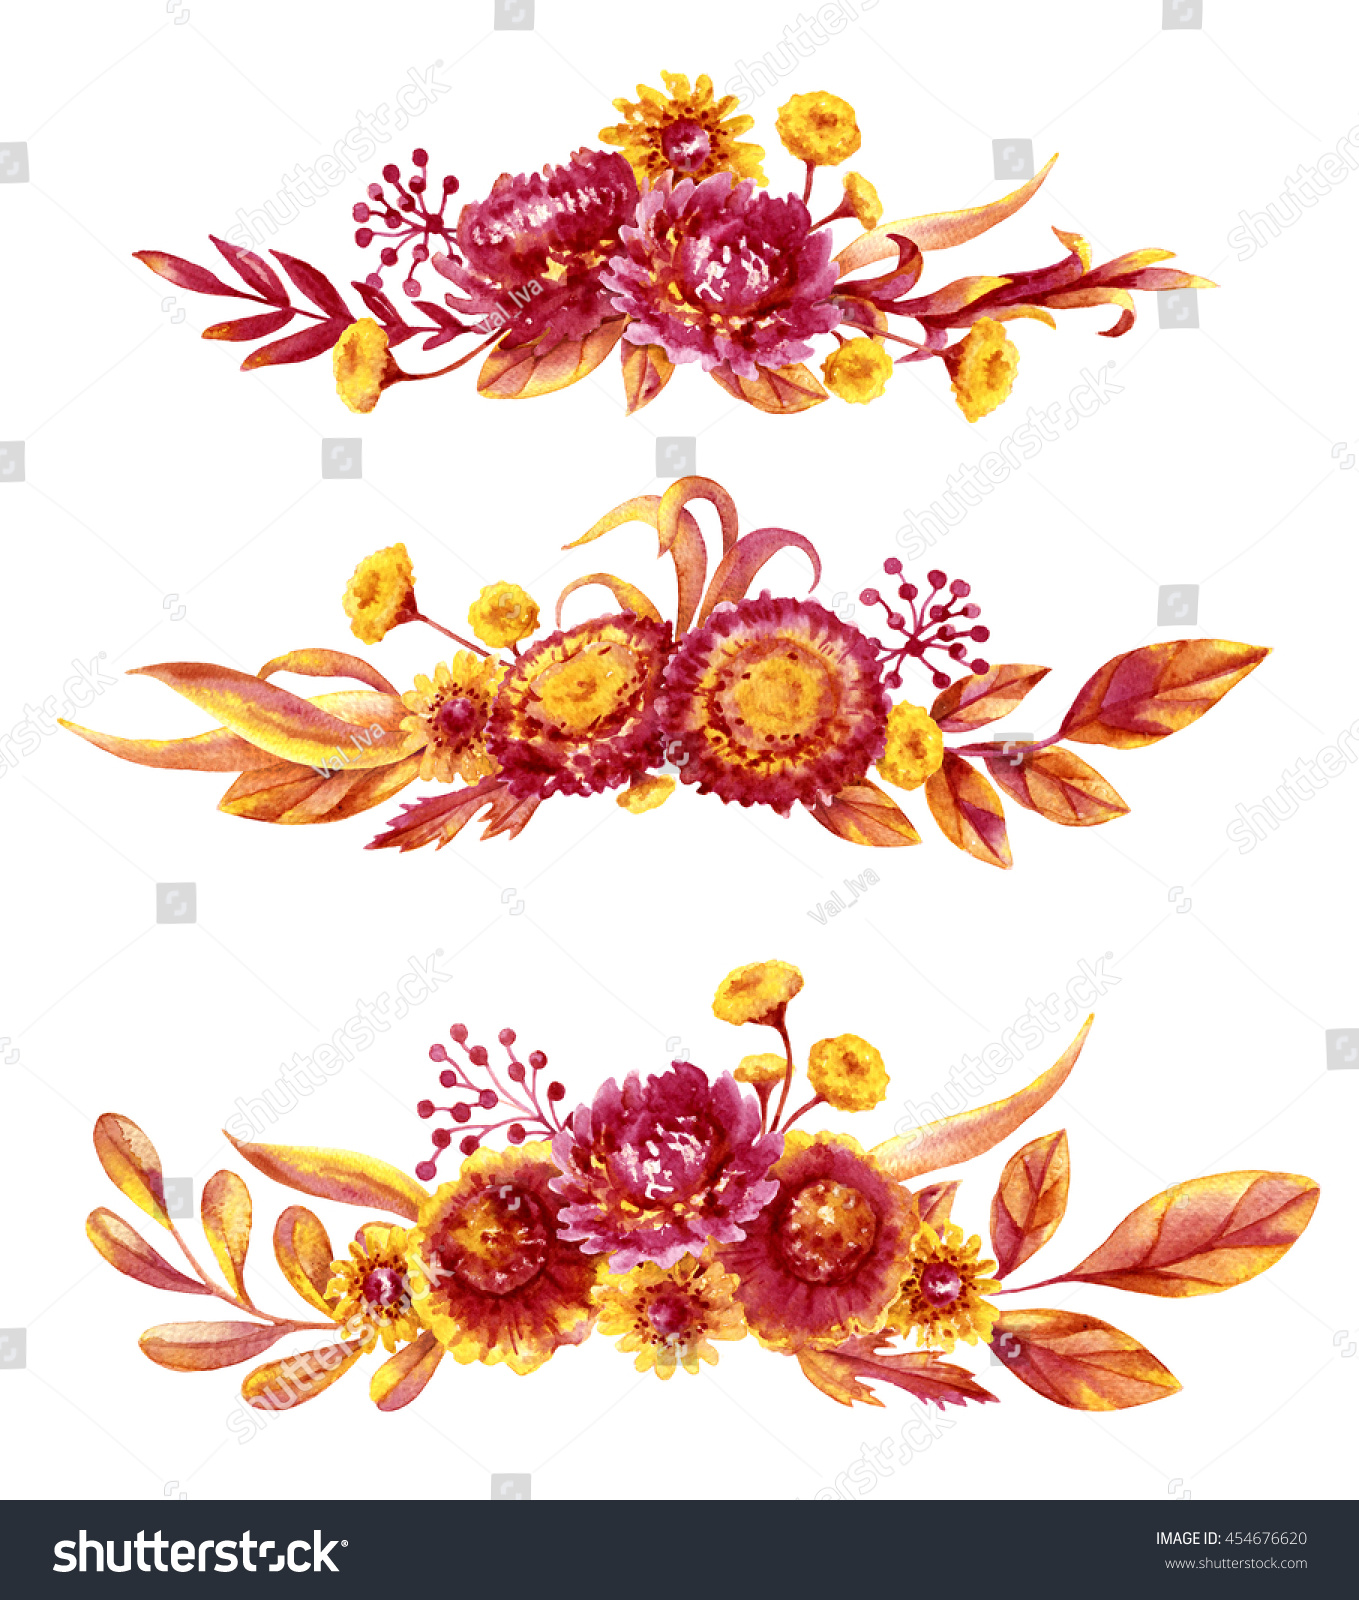 Hand Drawn Watercolor Autumn Flowers Bouquets Stock Illustration ...